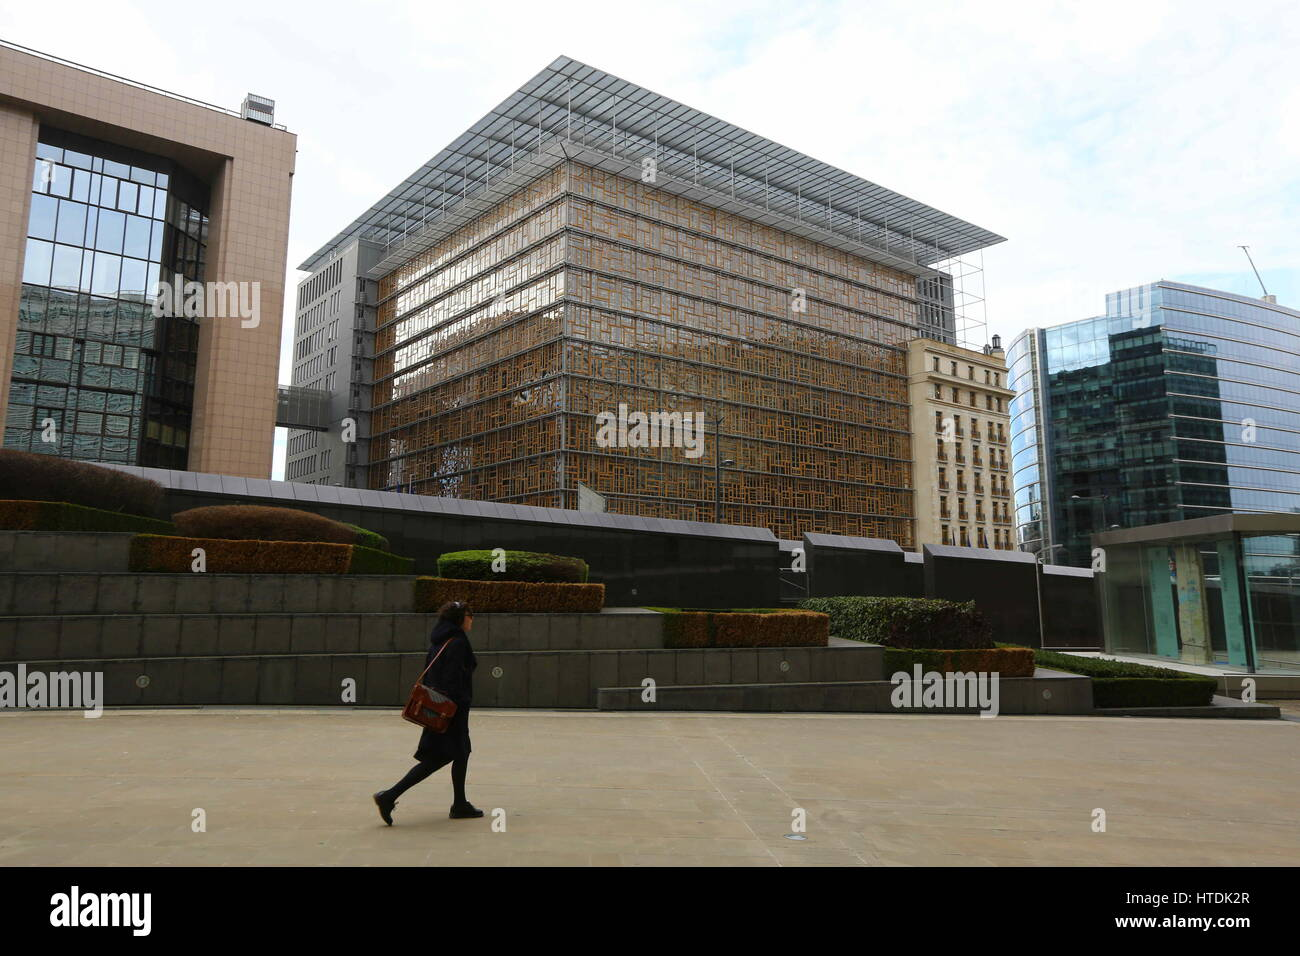 Brussels, Belgium. 10th Mar, 2017. A pedestrian walks by the Europa building in Brussels, Belgium, on March 10, - Stock Image